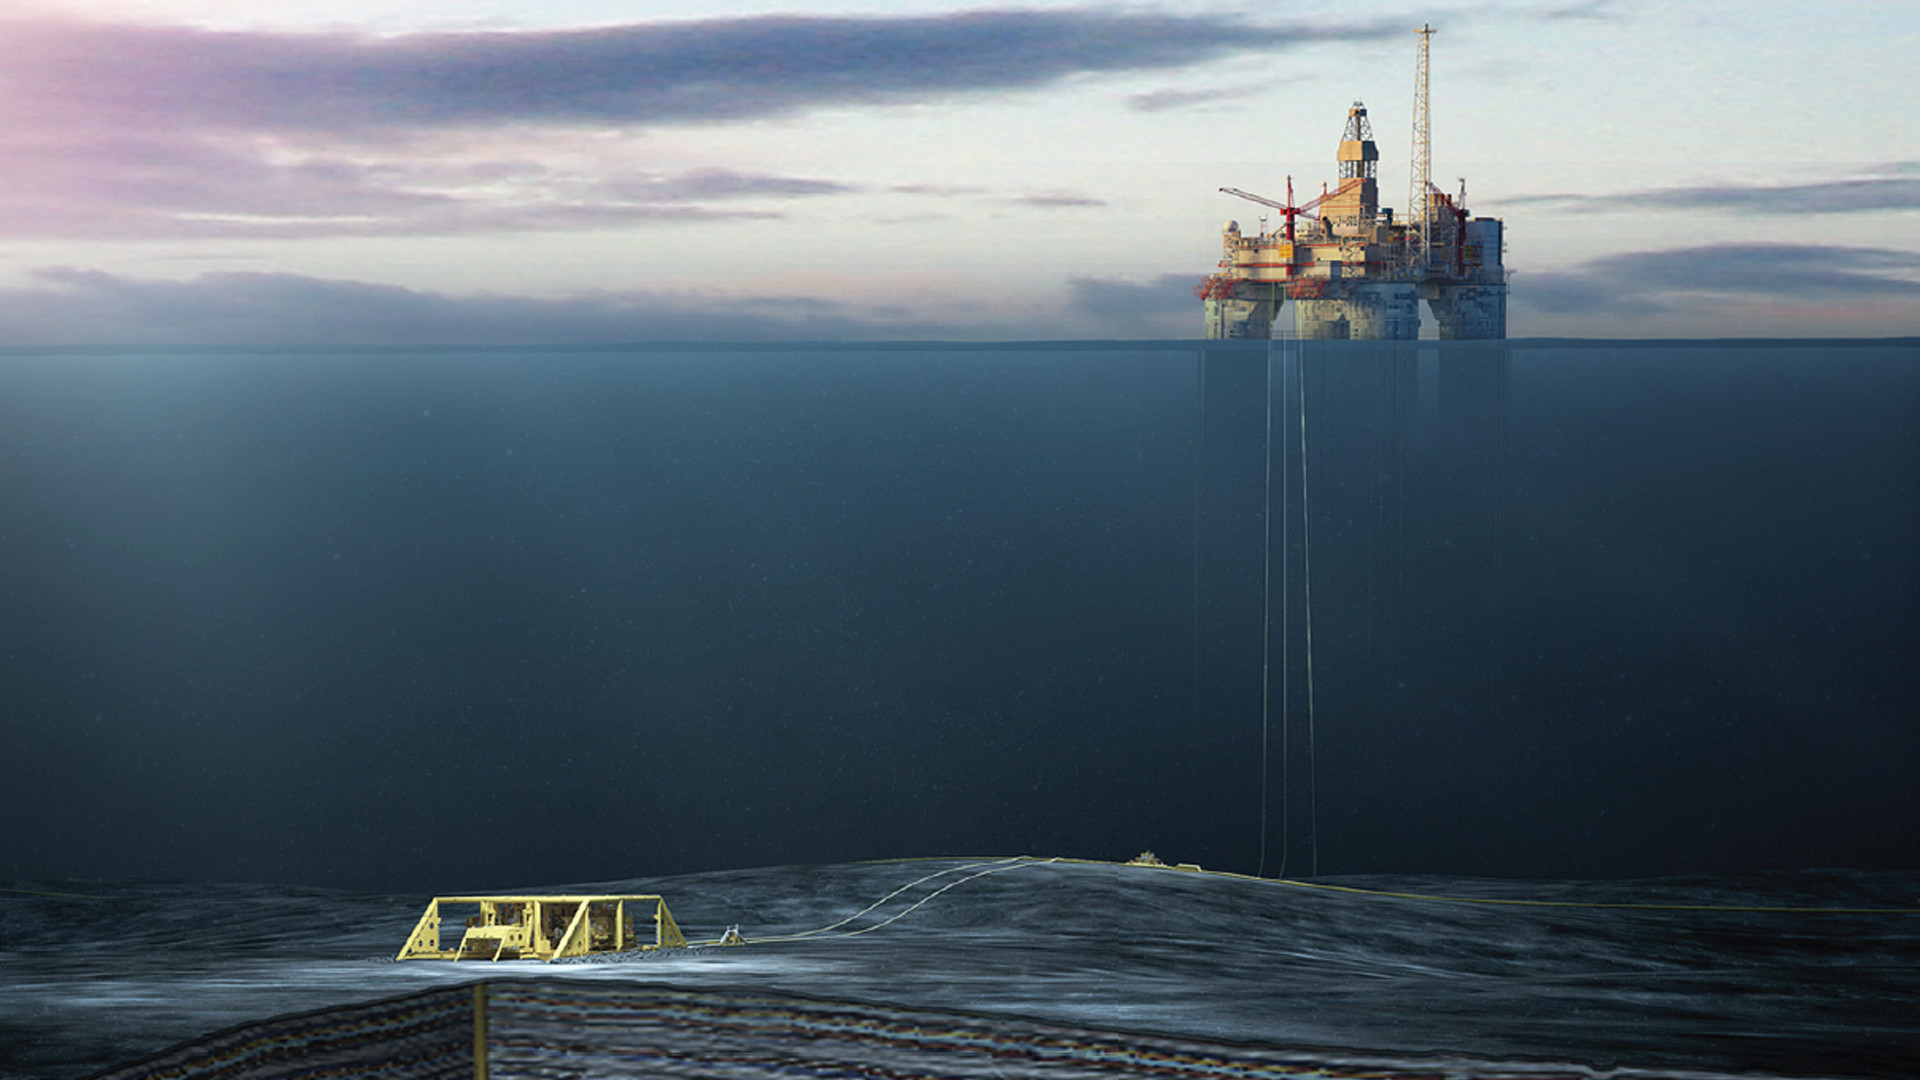 1920x1080 Aker Solutions Wins Subsea Contracts for Dvalin Gas Field